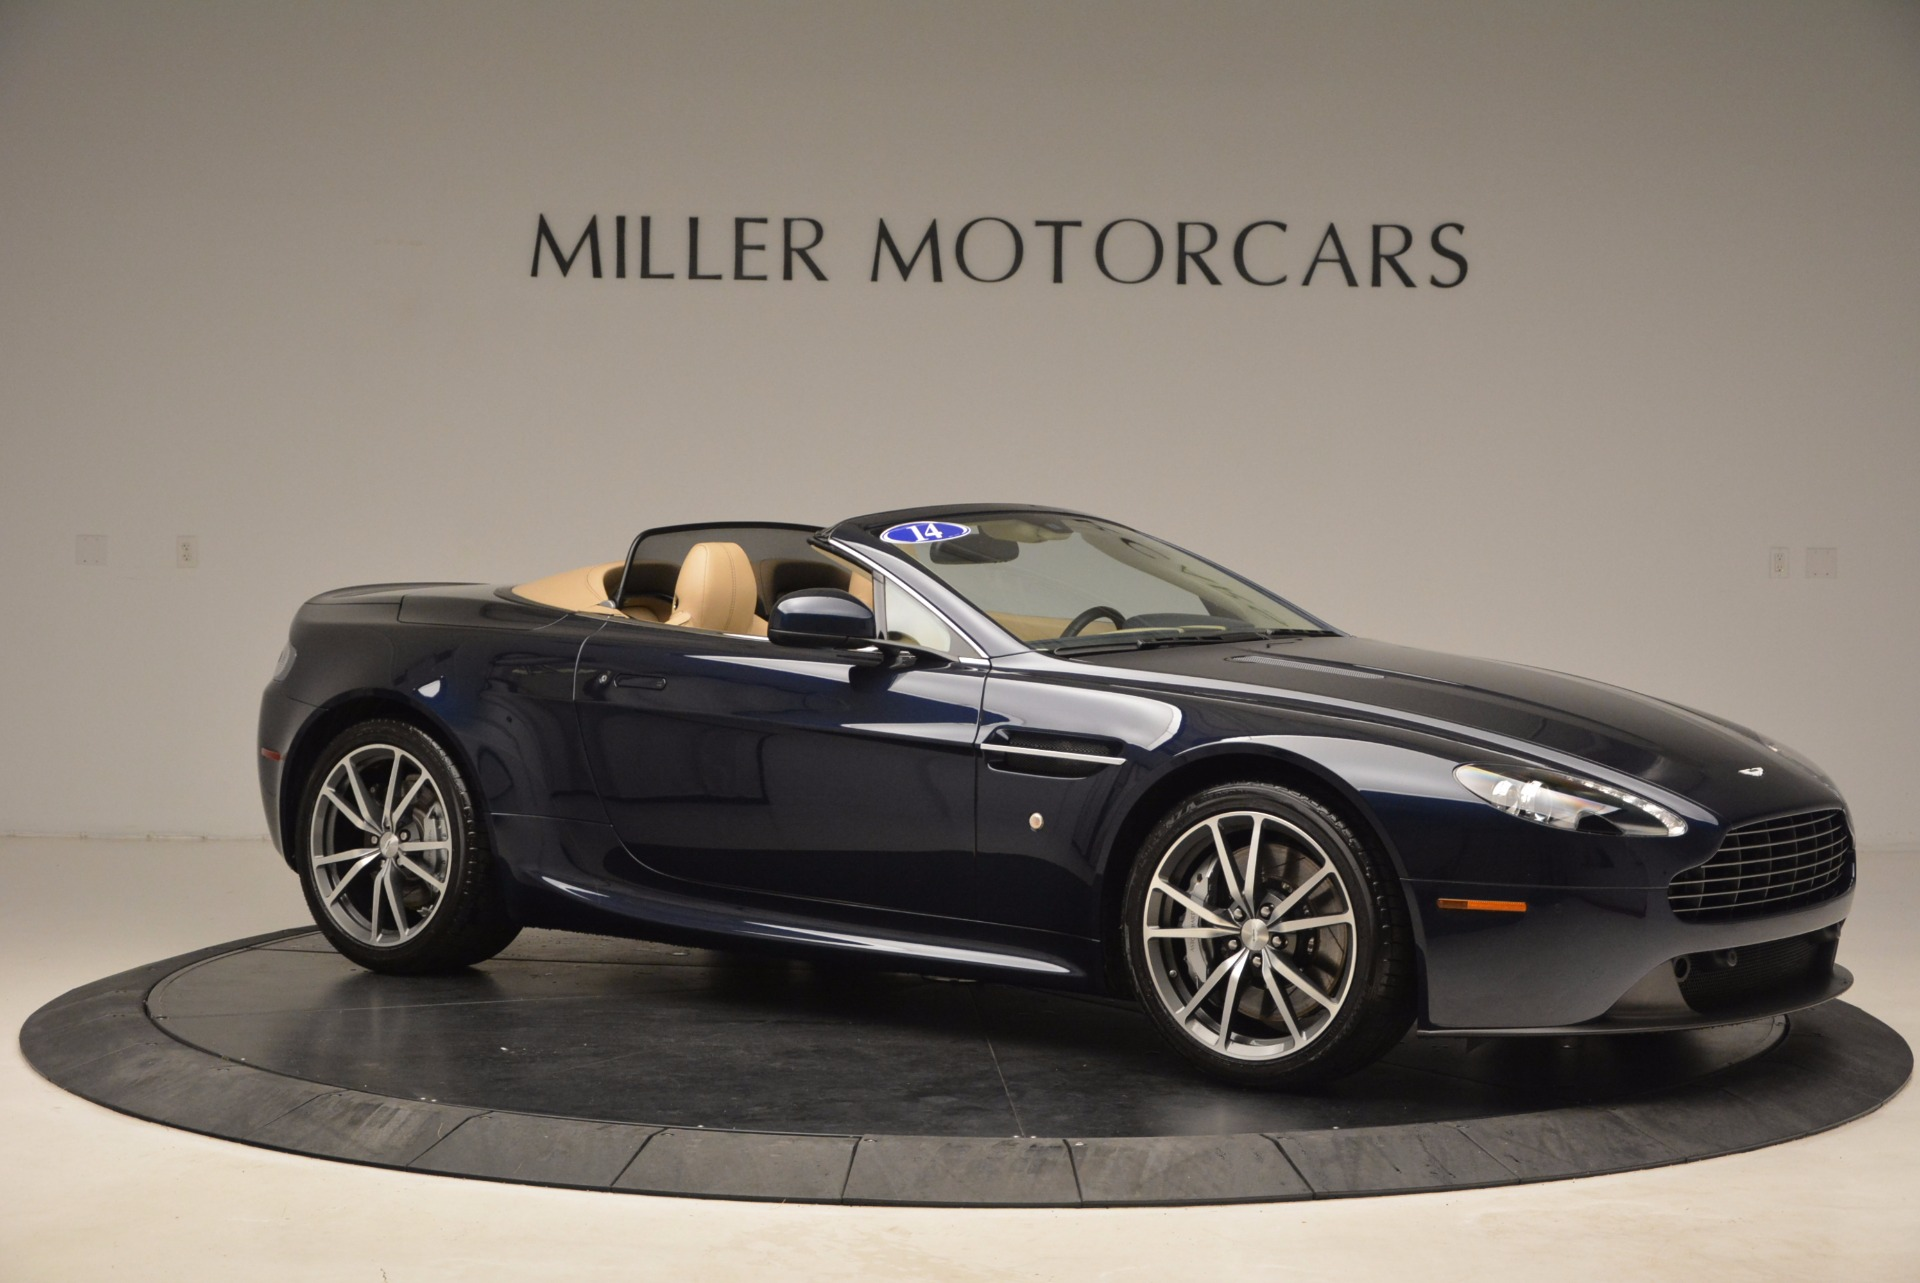 Used 2014 Aston Martin V8 Vantage Roadster For Sale In Greenwich, CT. Alfa Romeo of Greenwich, 7282 1623_p10